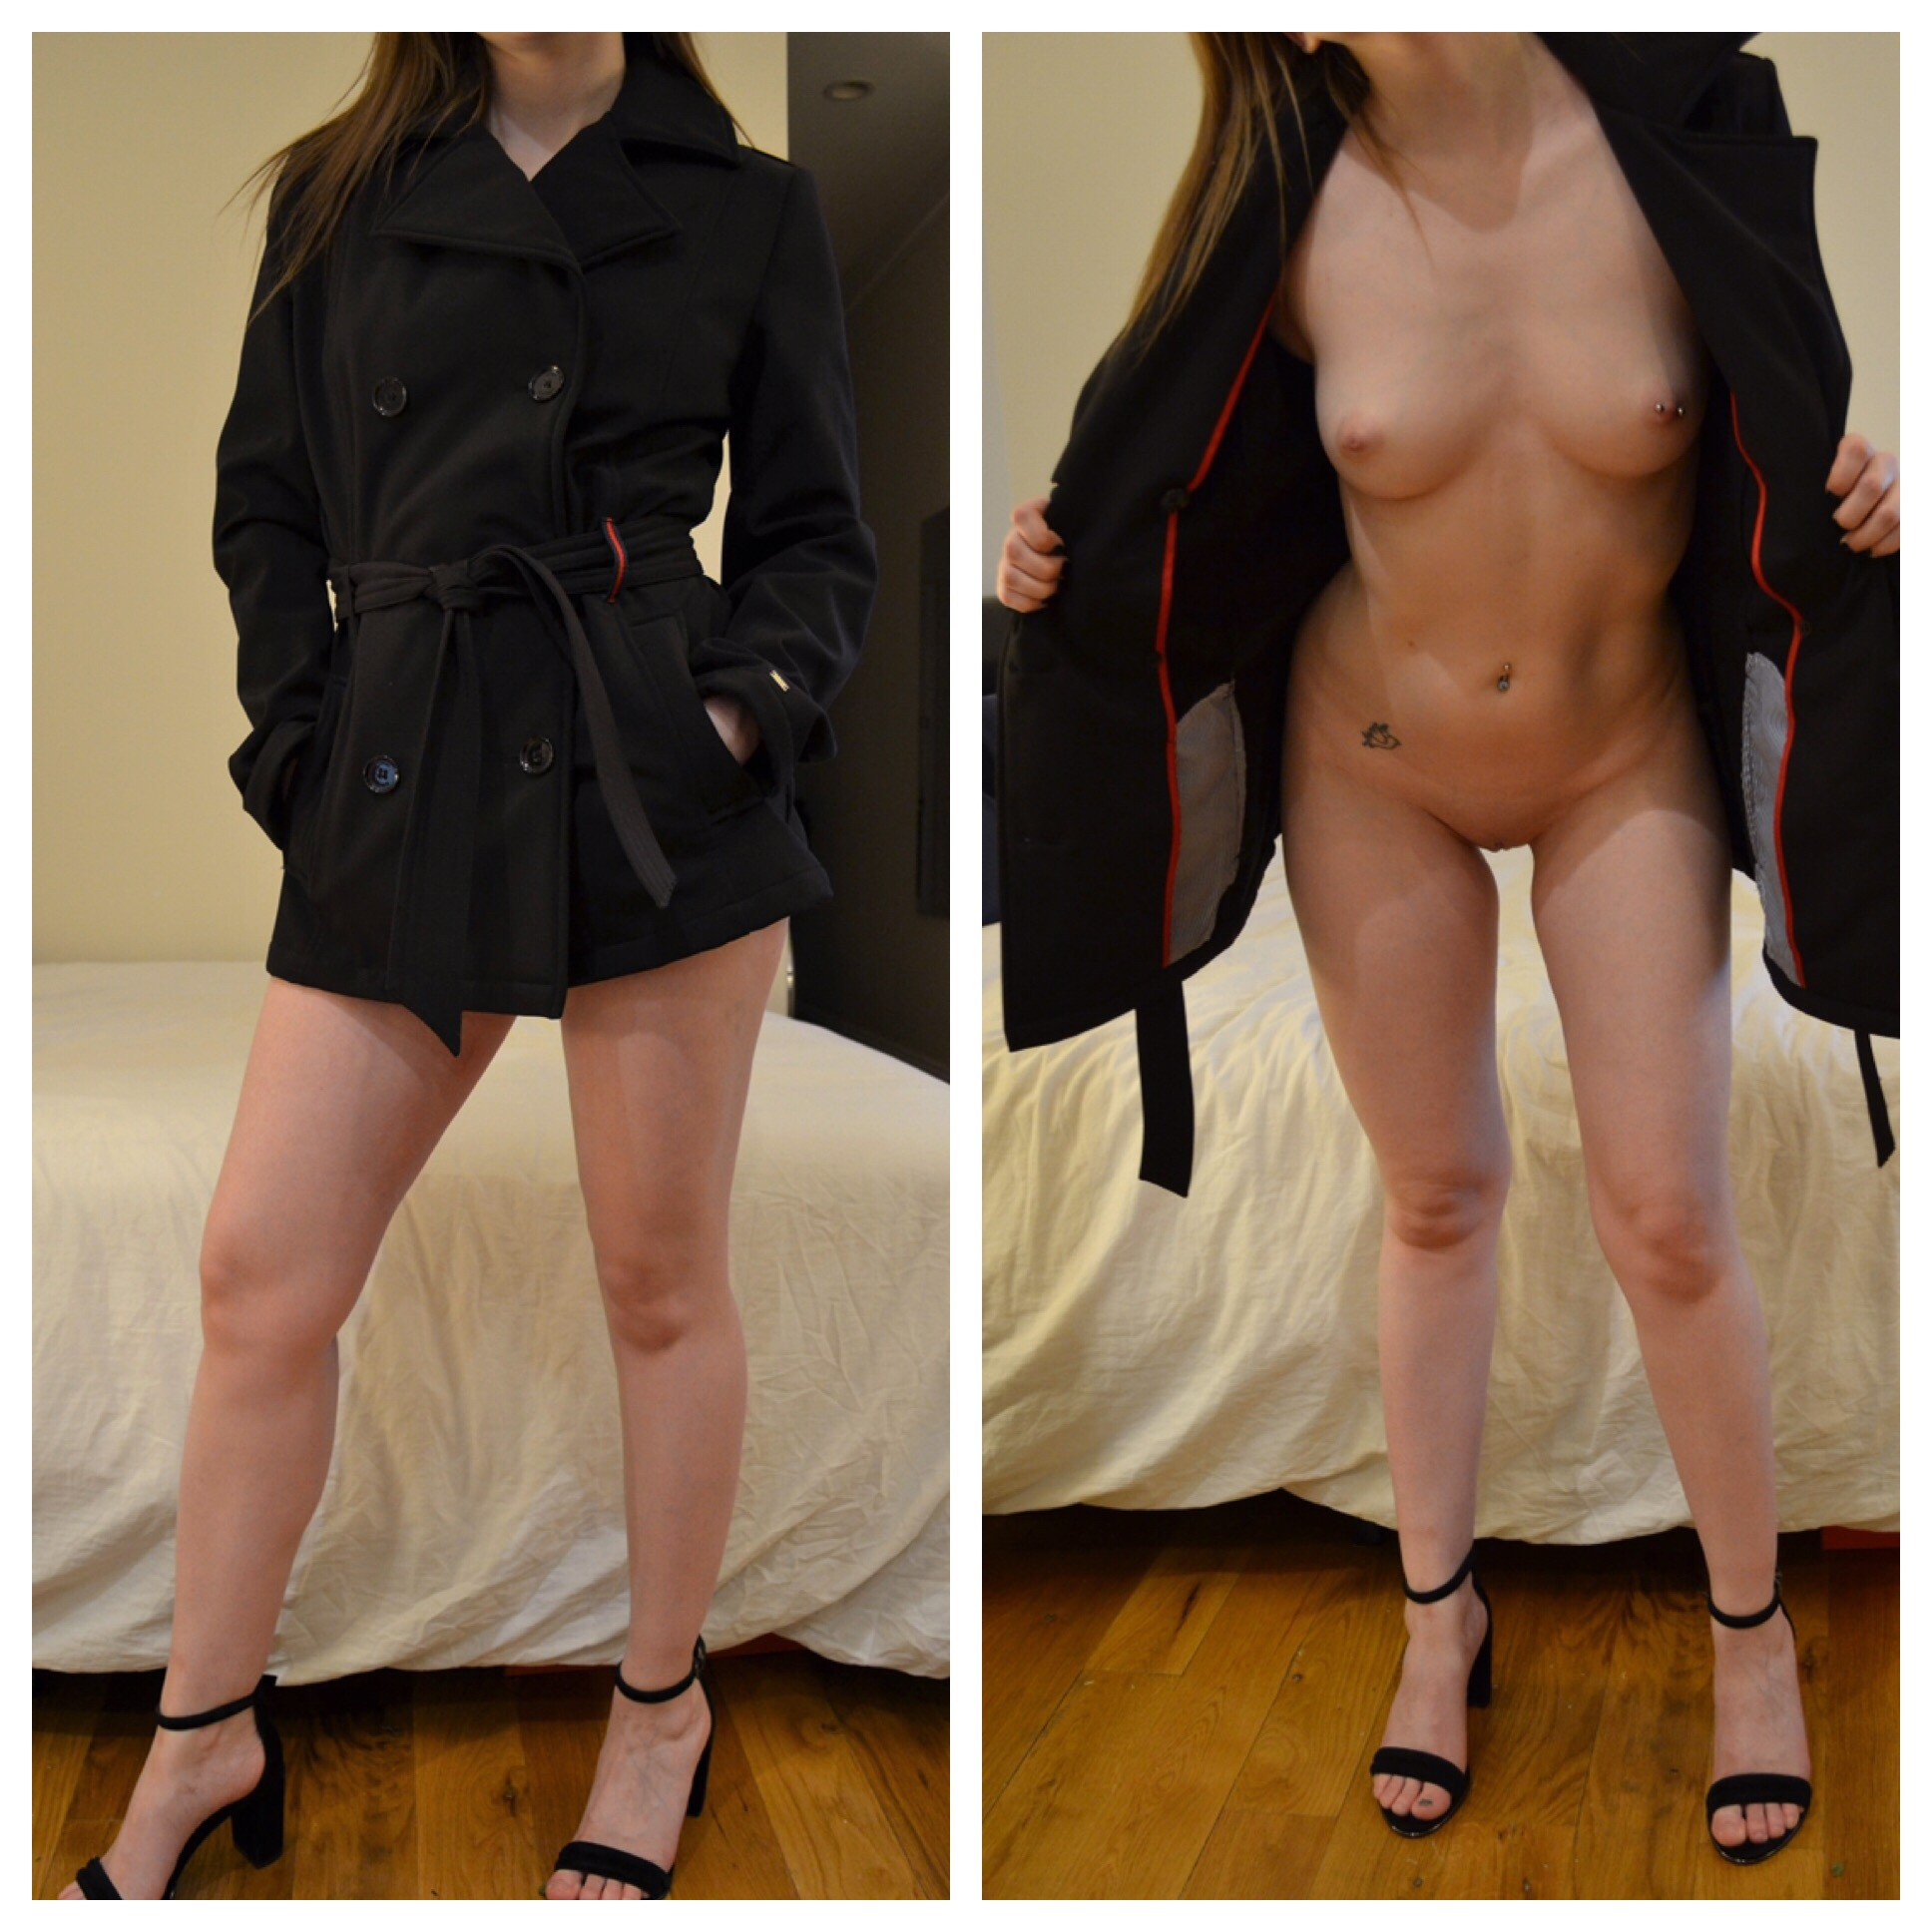 amateur nude girls trench coat flashing